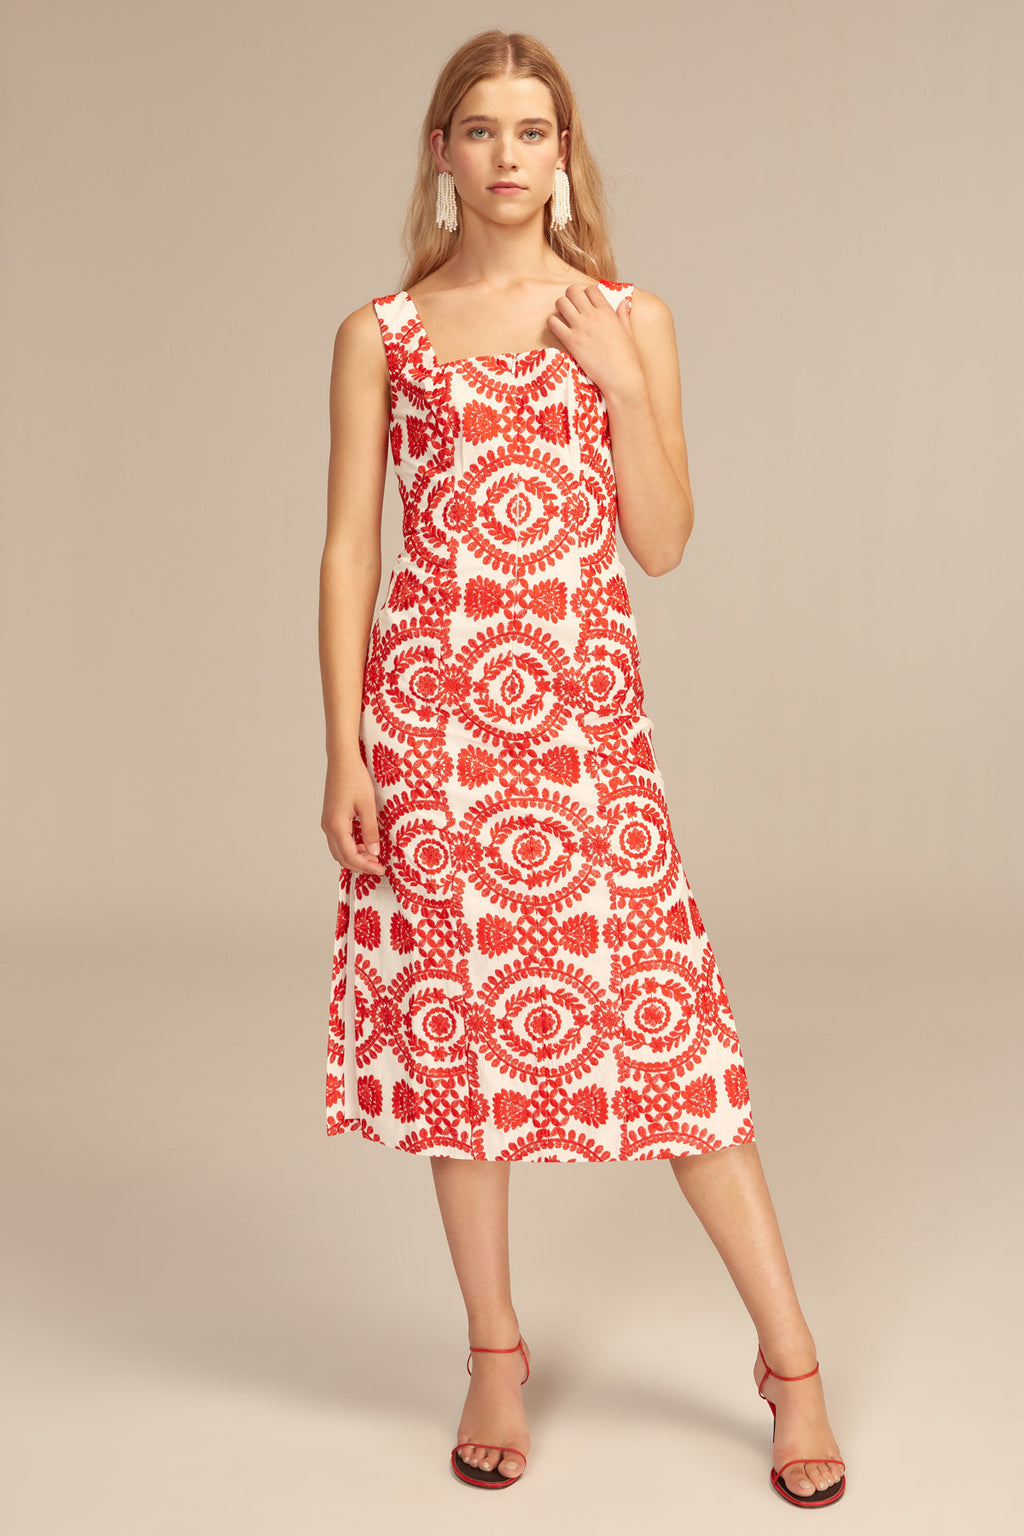 C/MEO Impressed Midi Dress in Ivory Red